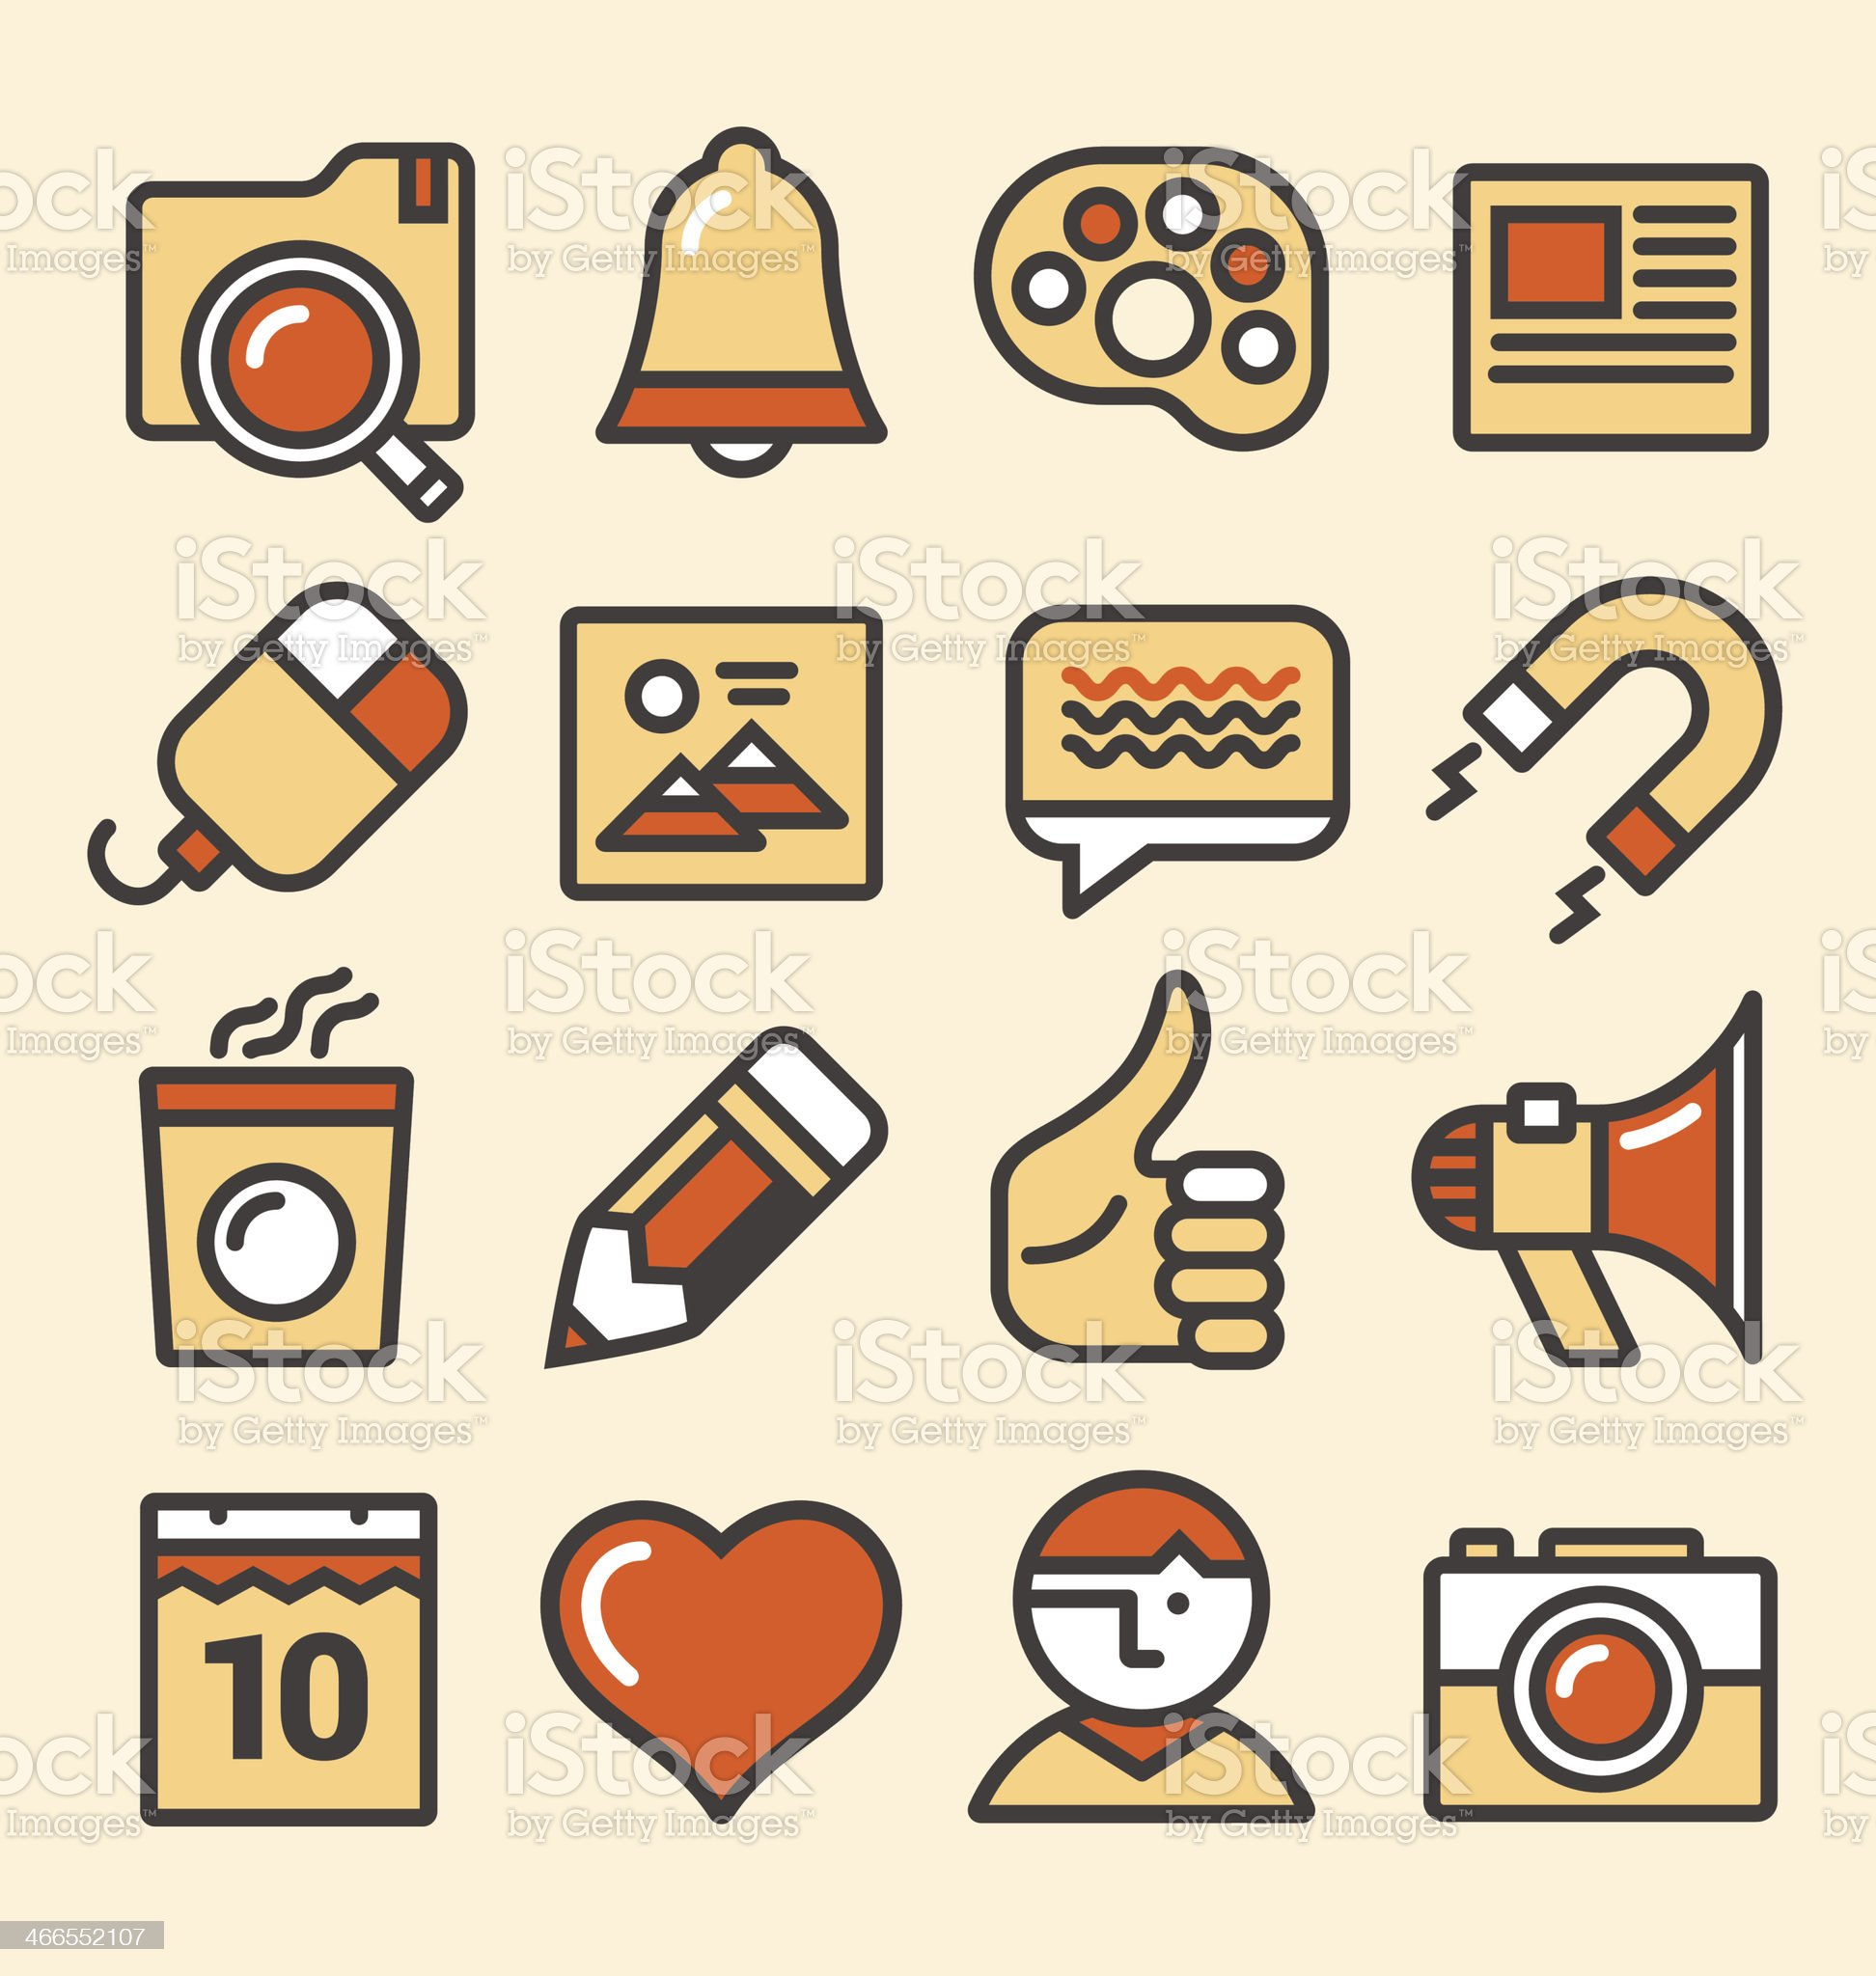 Outlined media icons set royalty-free stock vector art